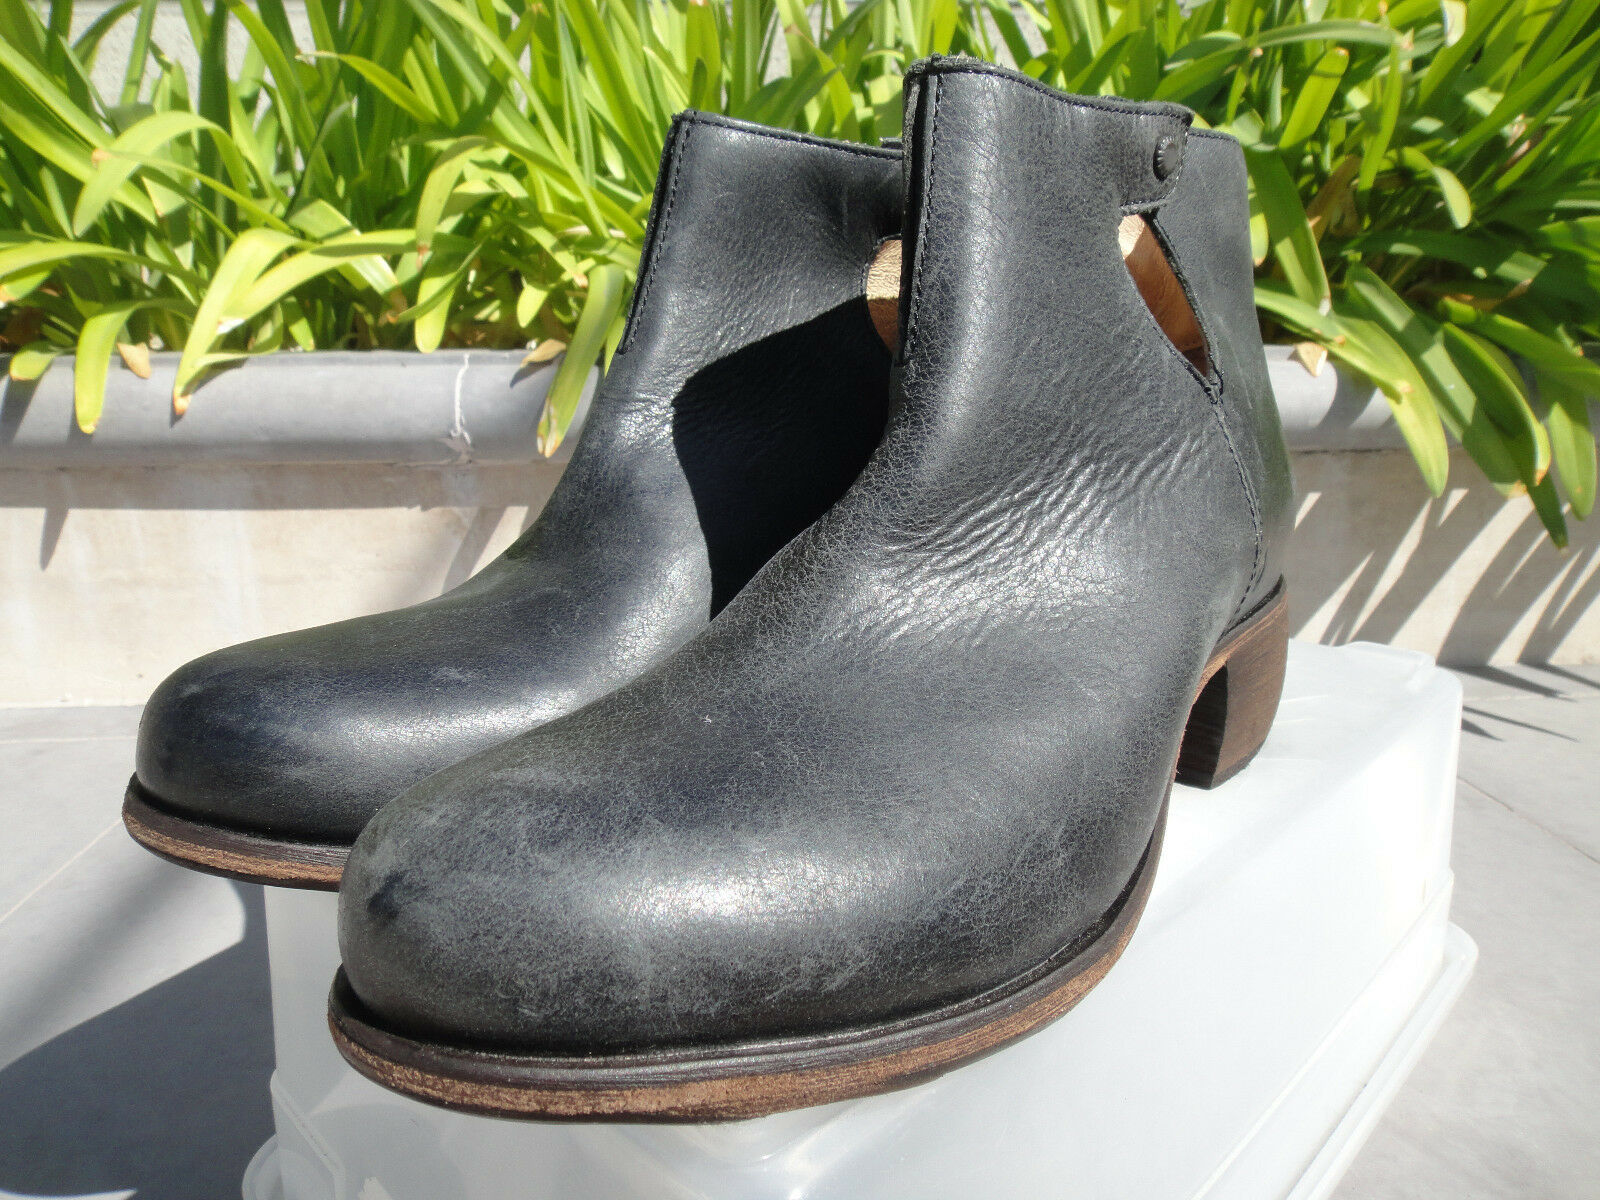 OluKai LEHUA, Antiqued Full Grain Leather Ankle Boot Bootie, Black Black Black US7 SOLD OUT 2291db